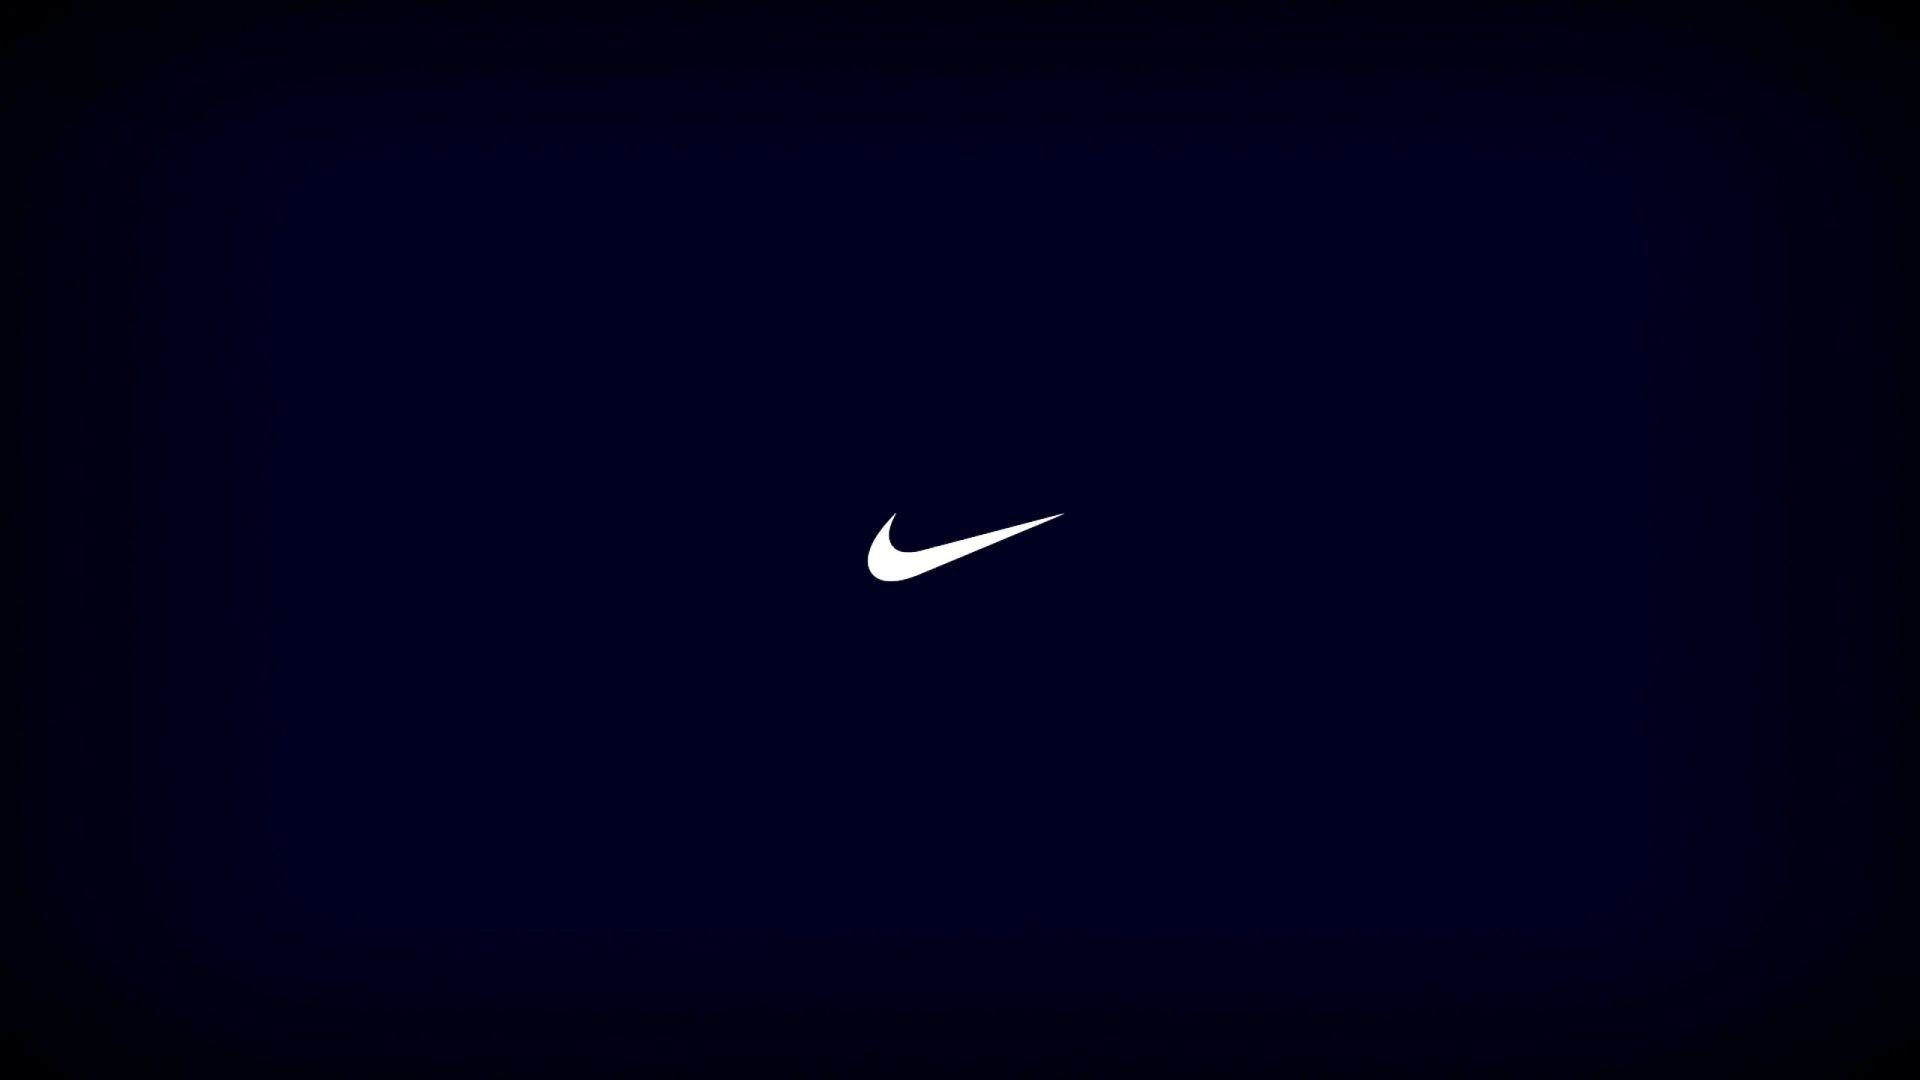 Res: 1920x1080, Nike Black Wallpapers